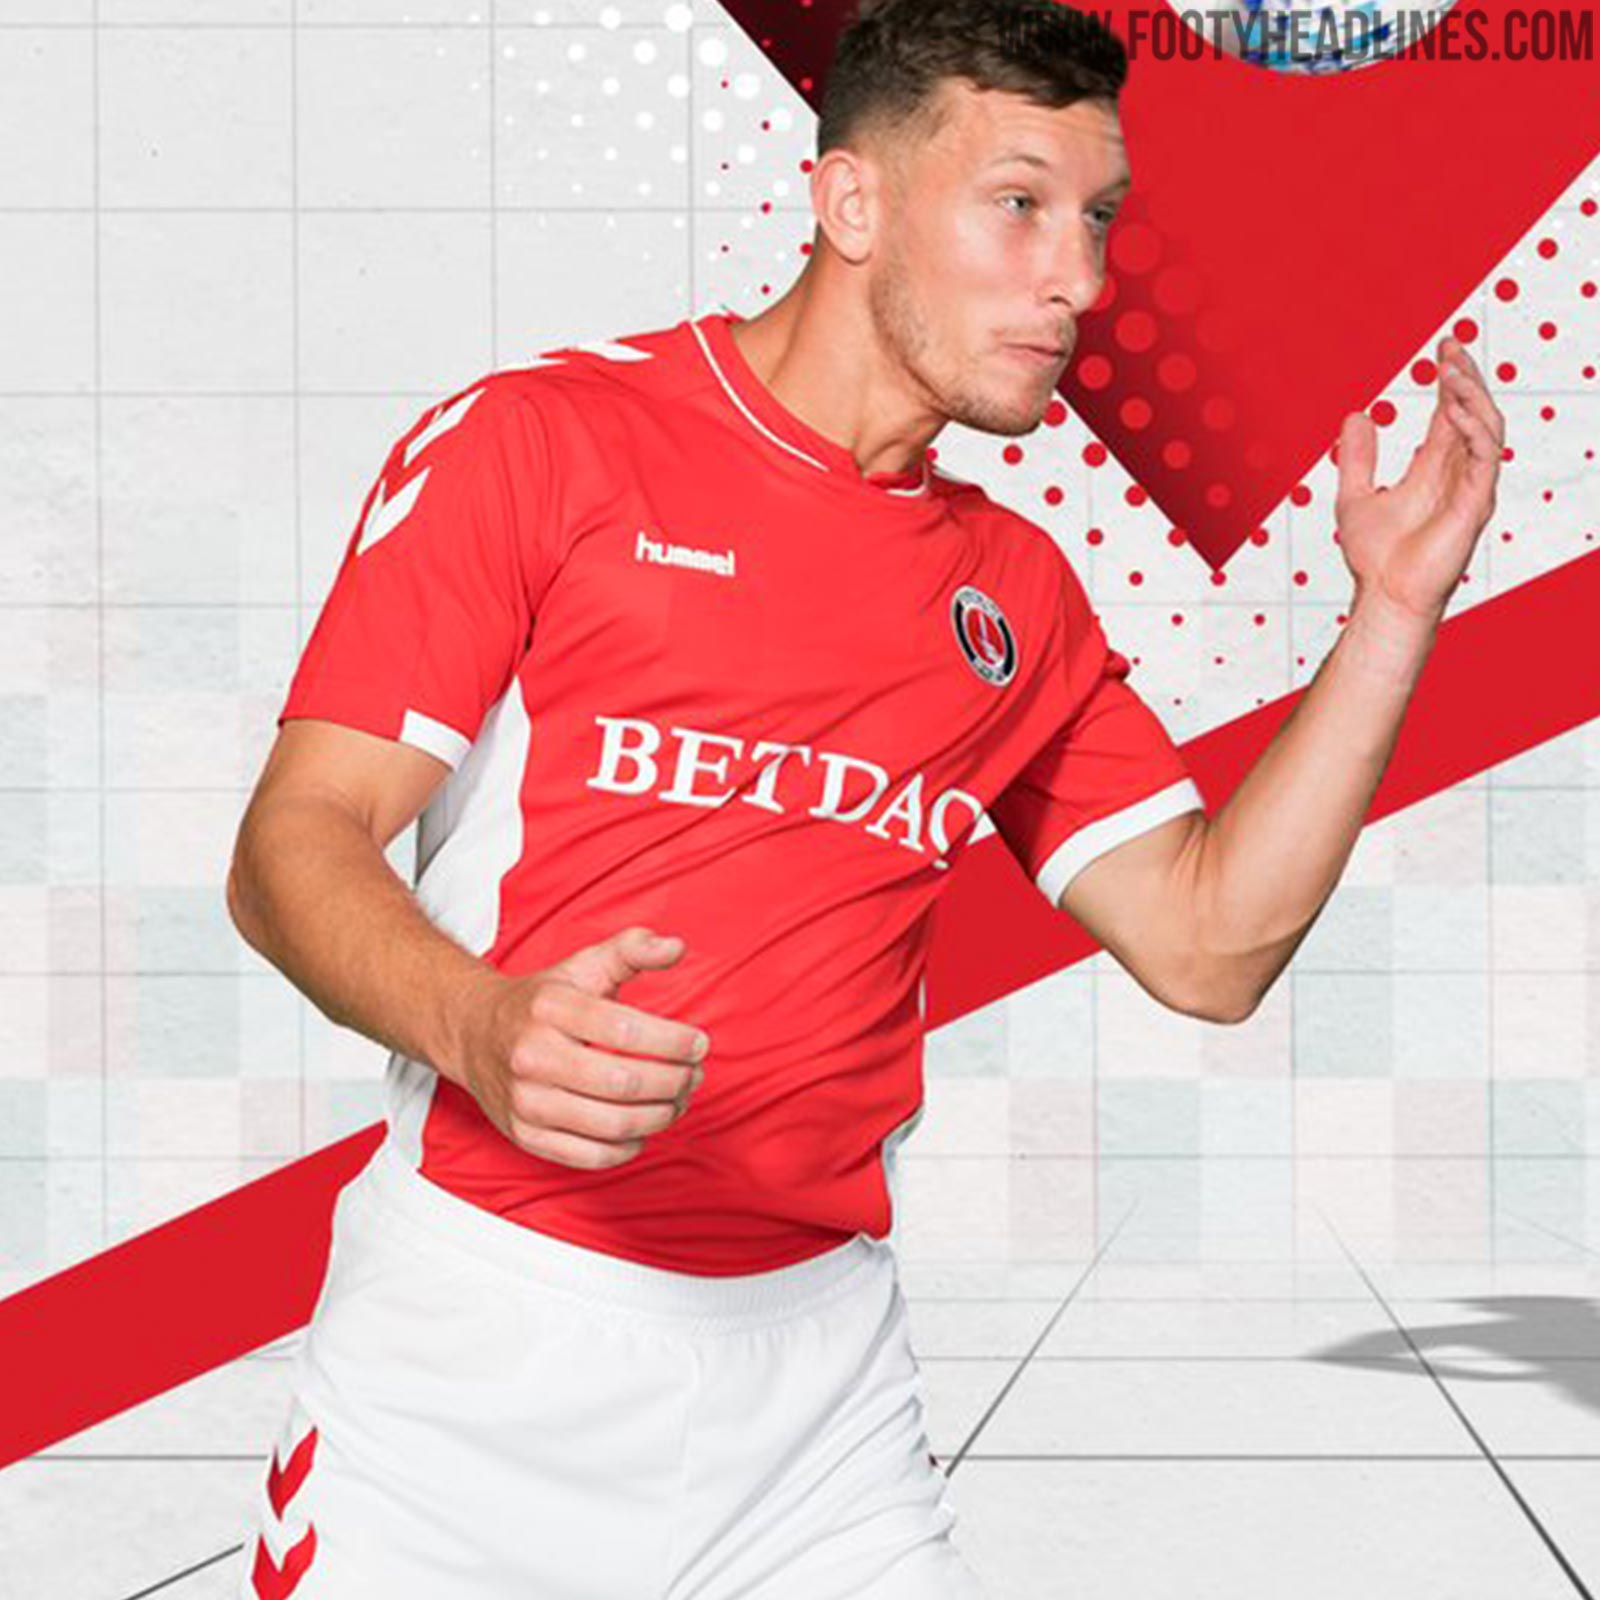 d3c19287a6055 Charlton 18-19 Home & Away Kits Released - Footy Headlines